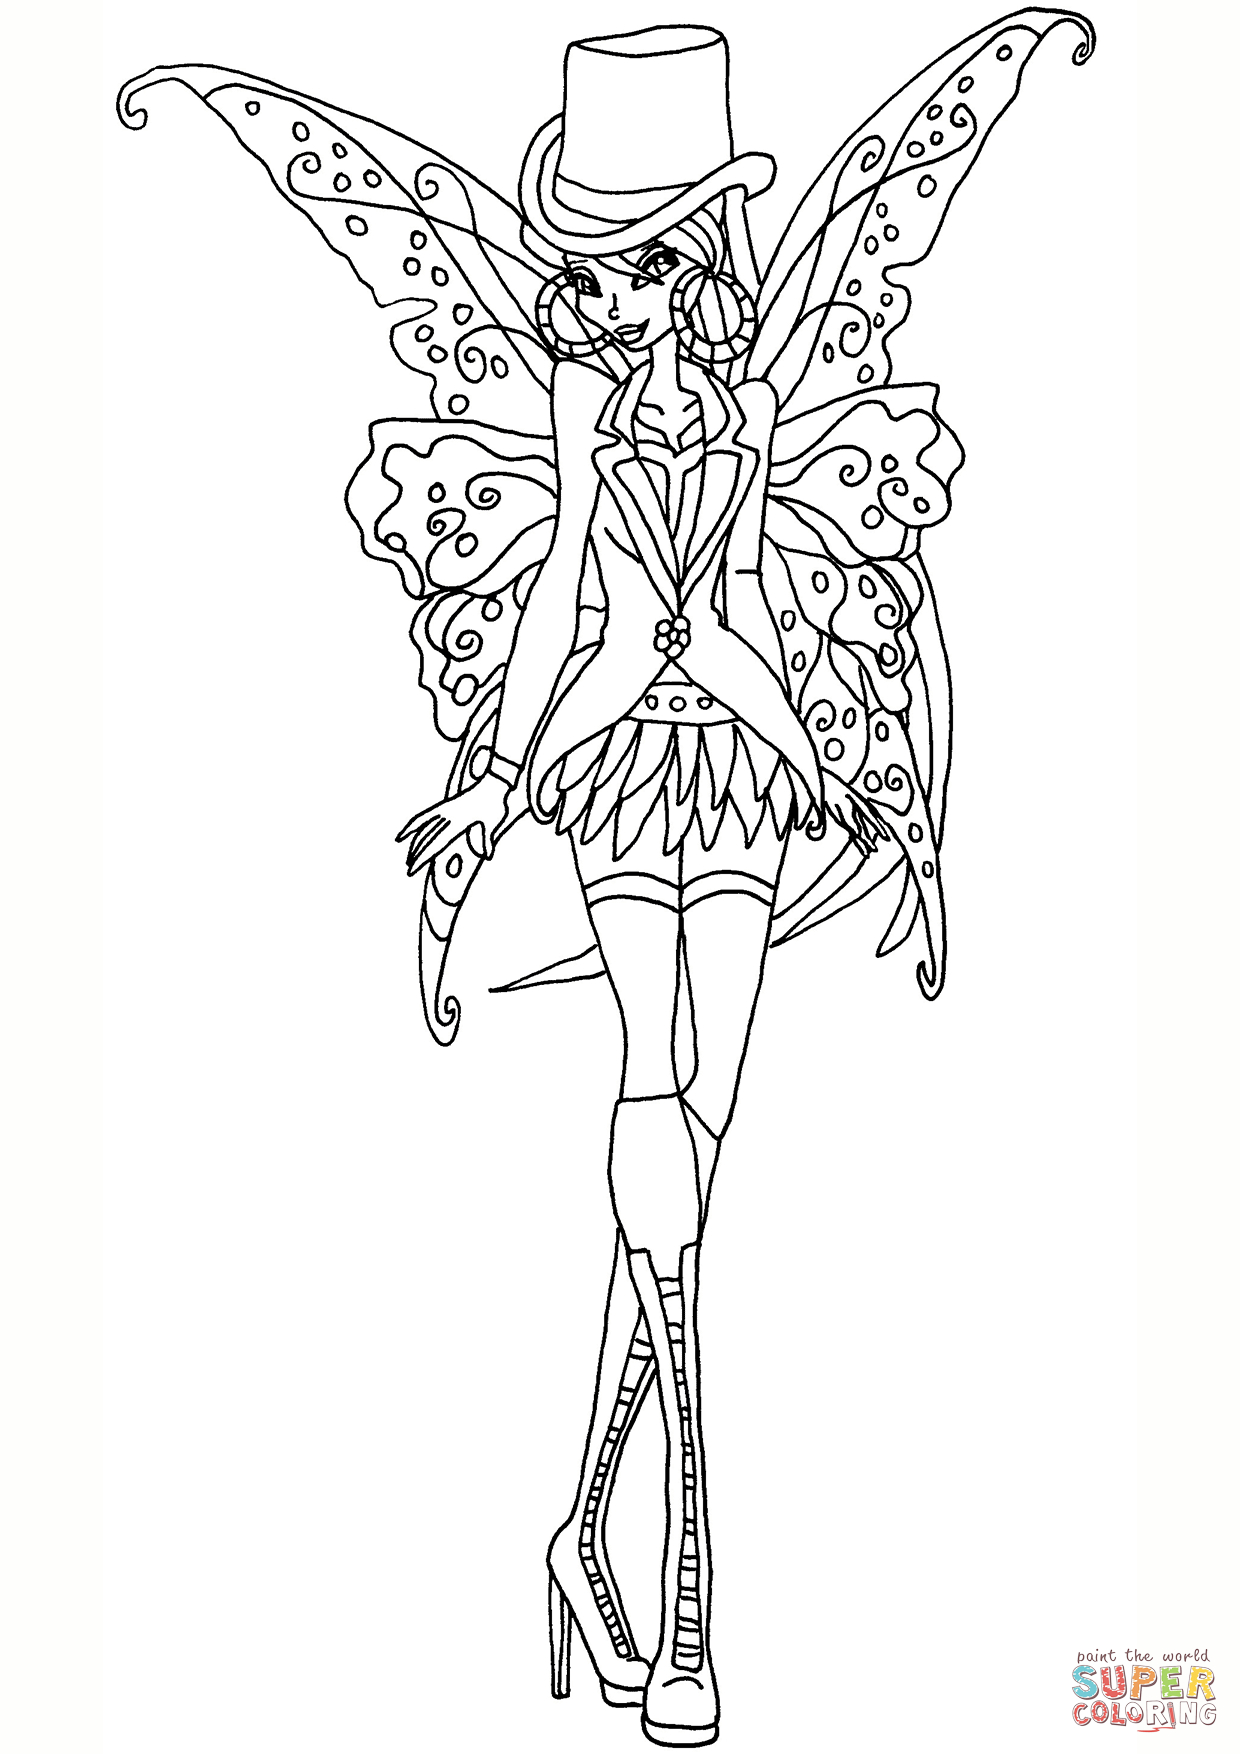 Coloring ~ Coloring Free Printable Fairy Pages Unique Flower Thrift - Free Printable Coloring Pages For Adults Dark Fairies